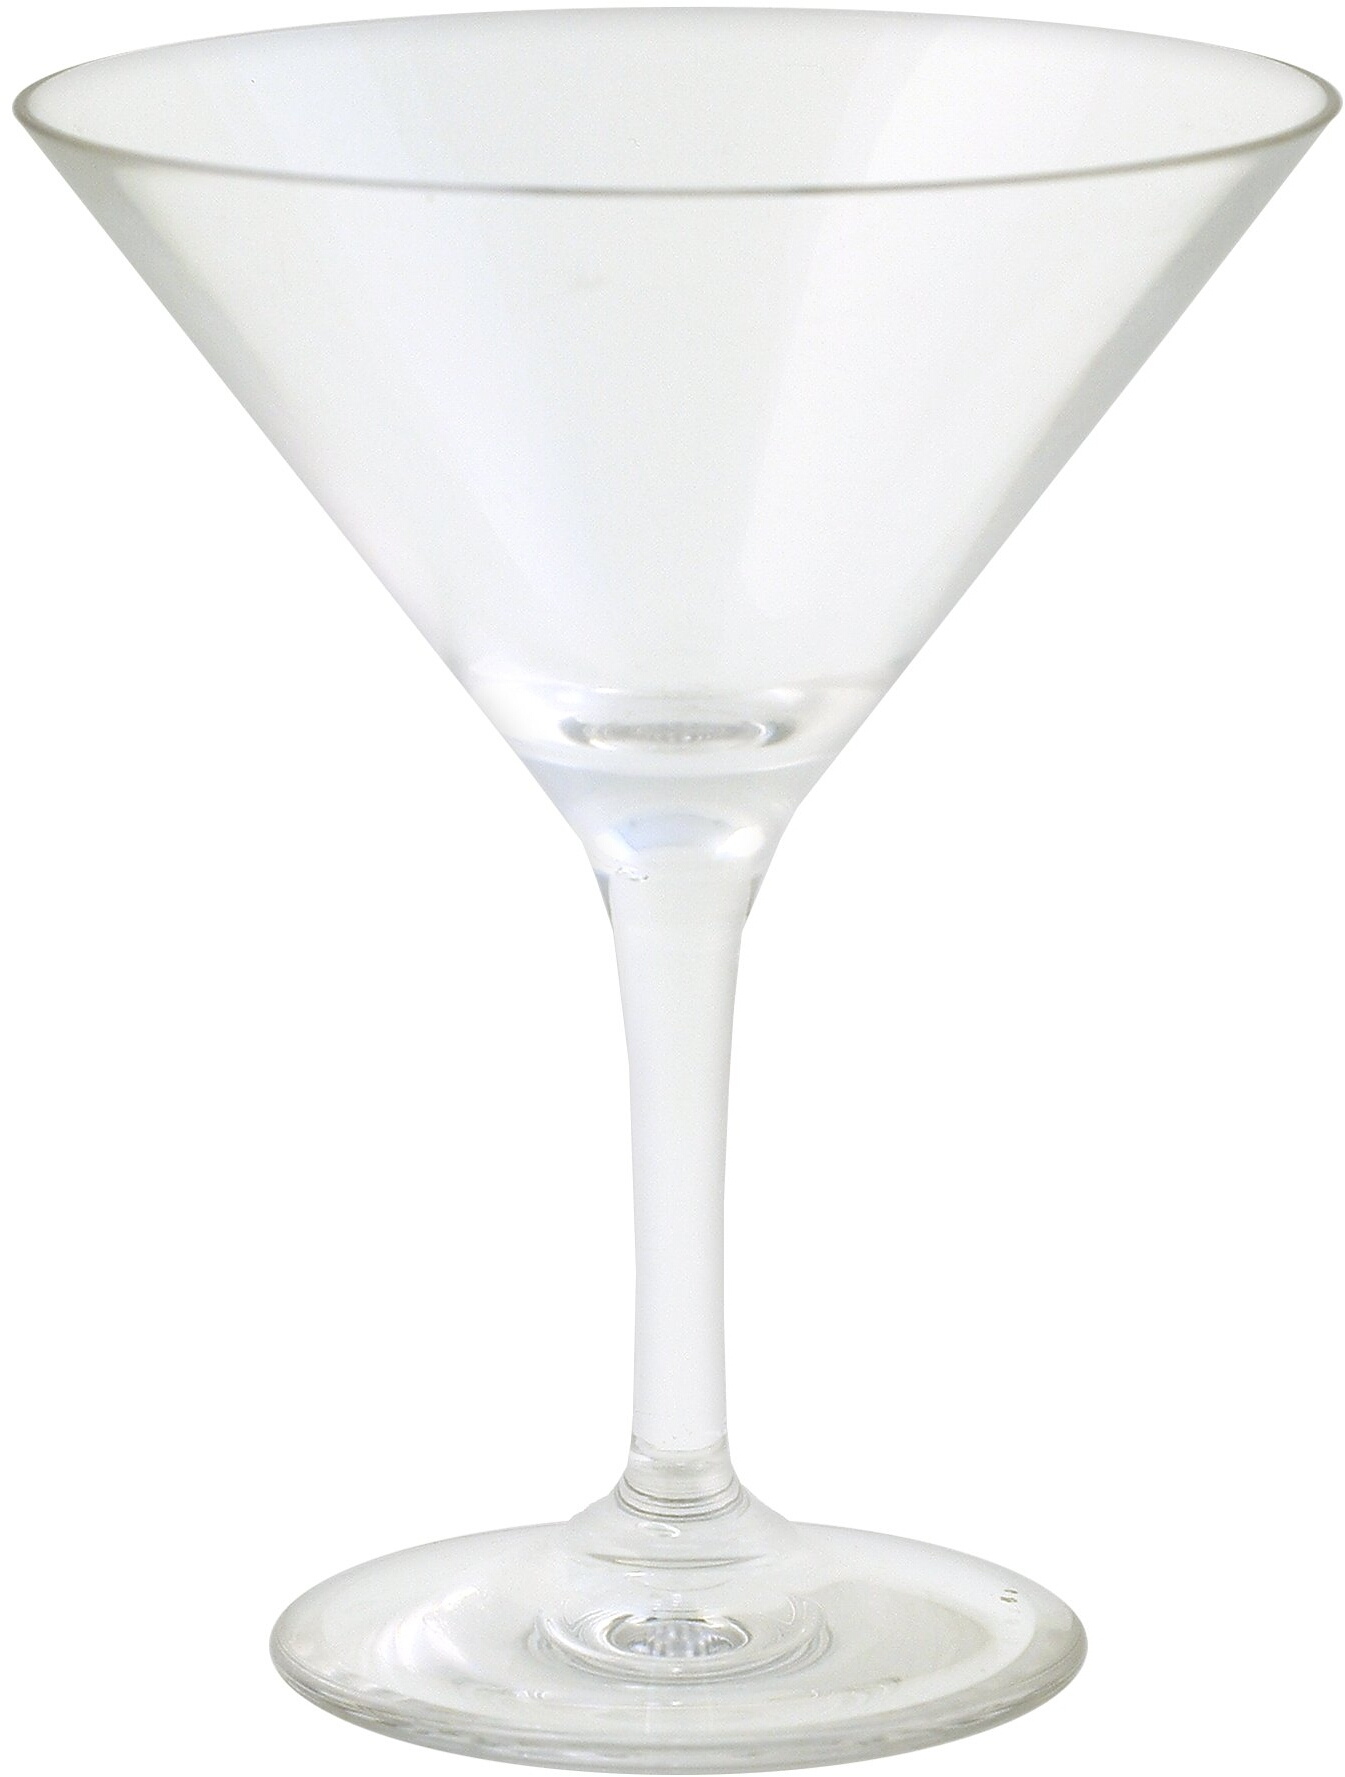 Strahl Design+ Contemporary Clear Martini Glass, 12 Ounce